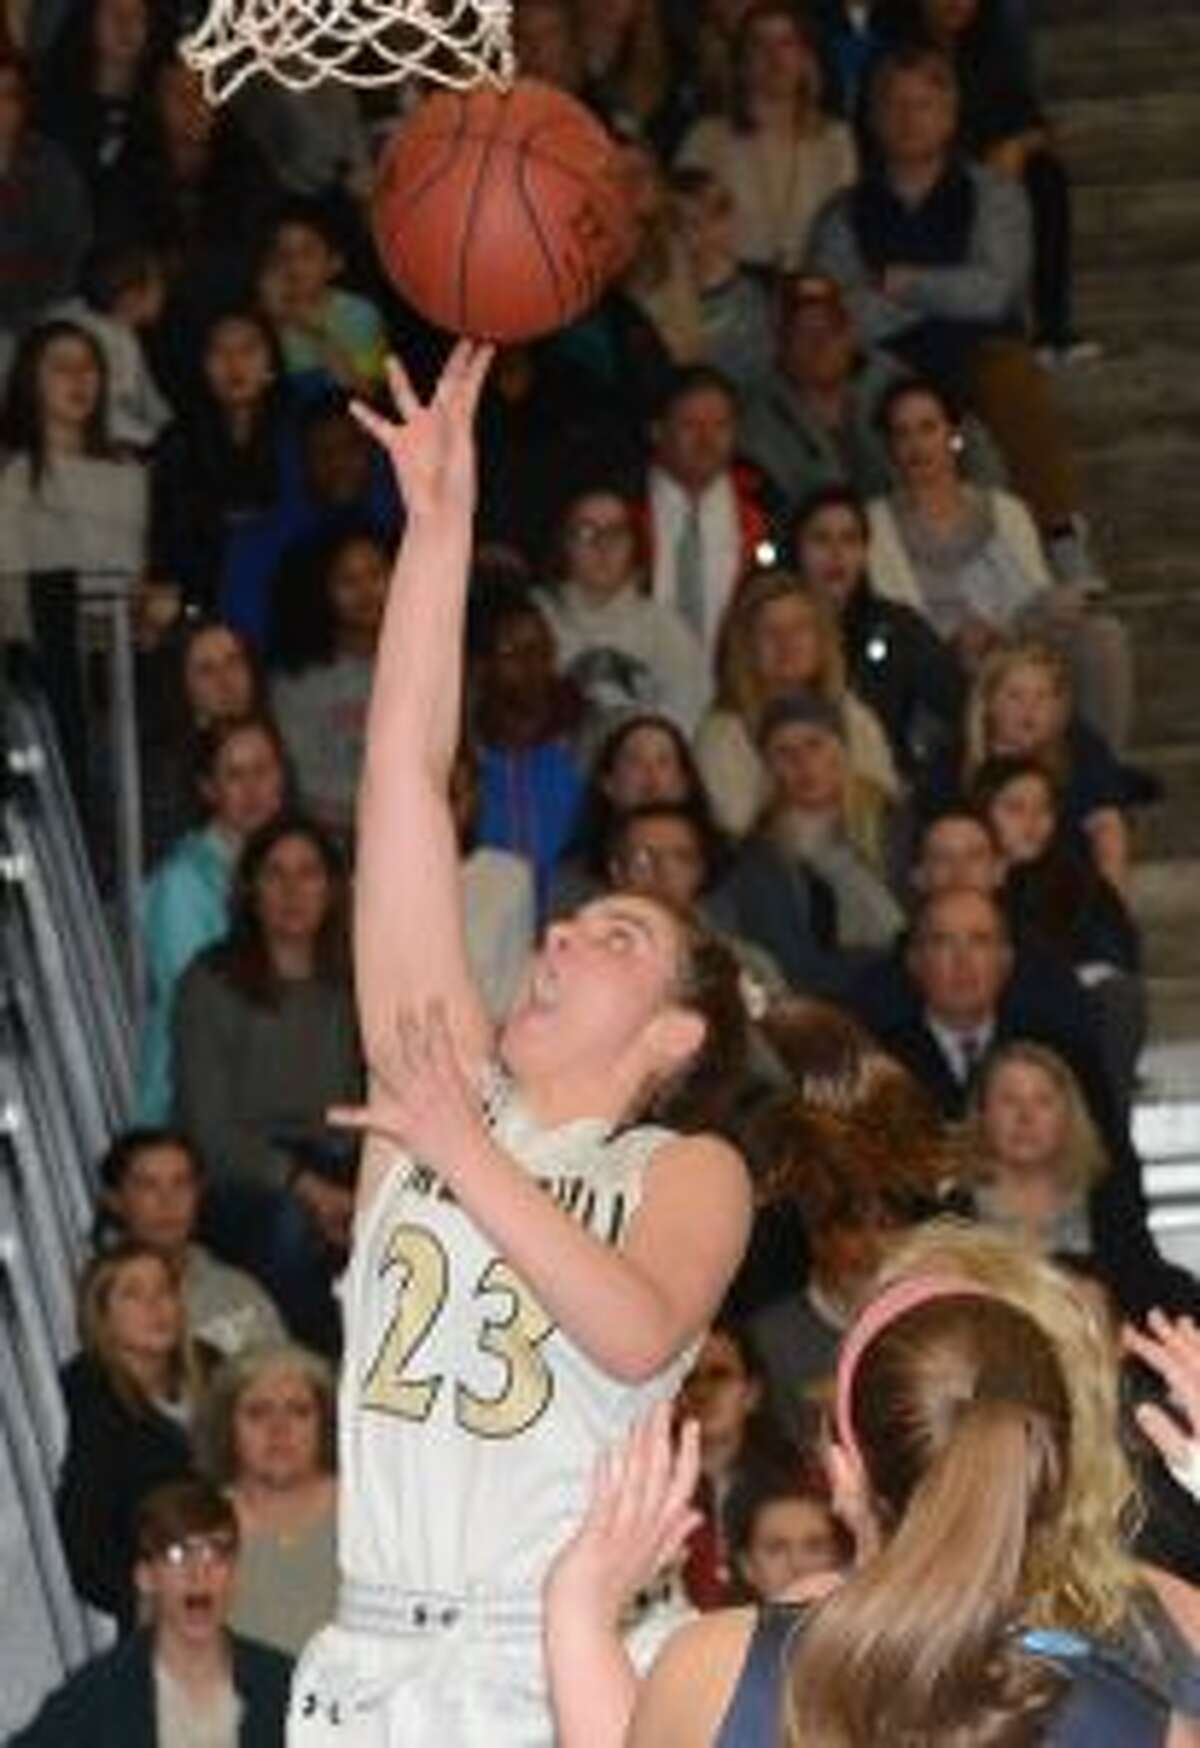 Julie Keckler was named MVP after Trumbull High defeated Wilton for the FCIAC title. - Andy Hutchison photos